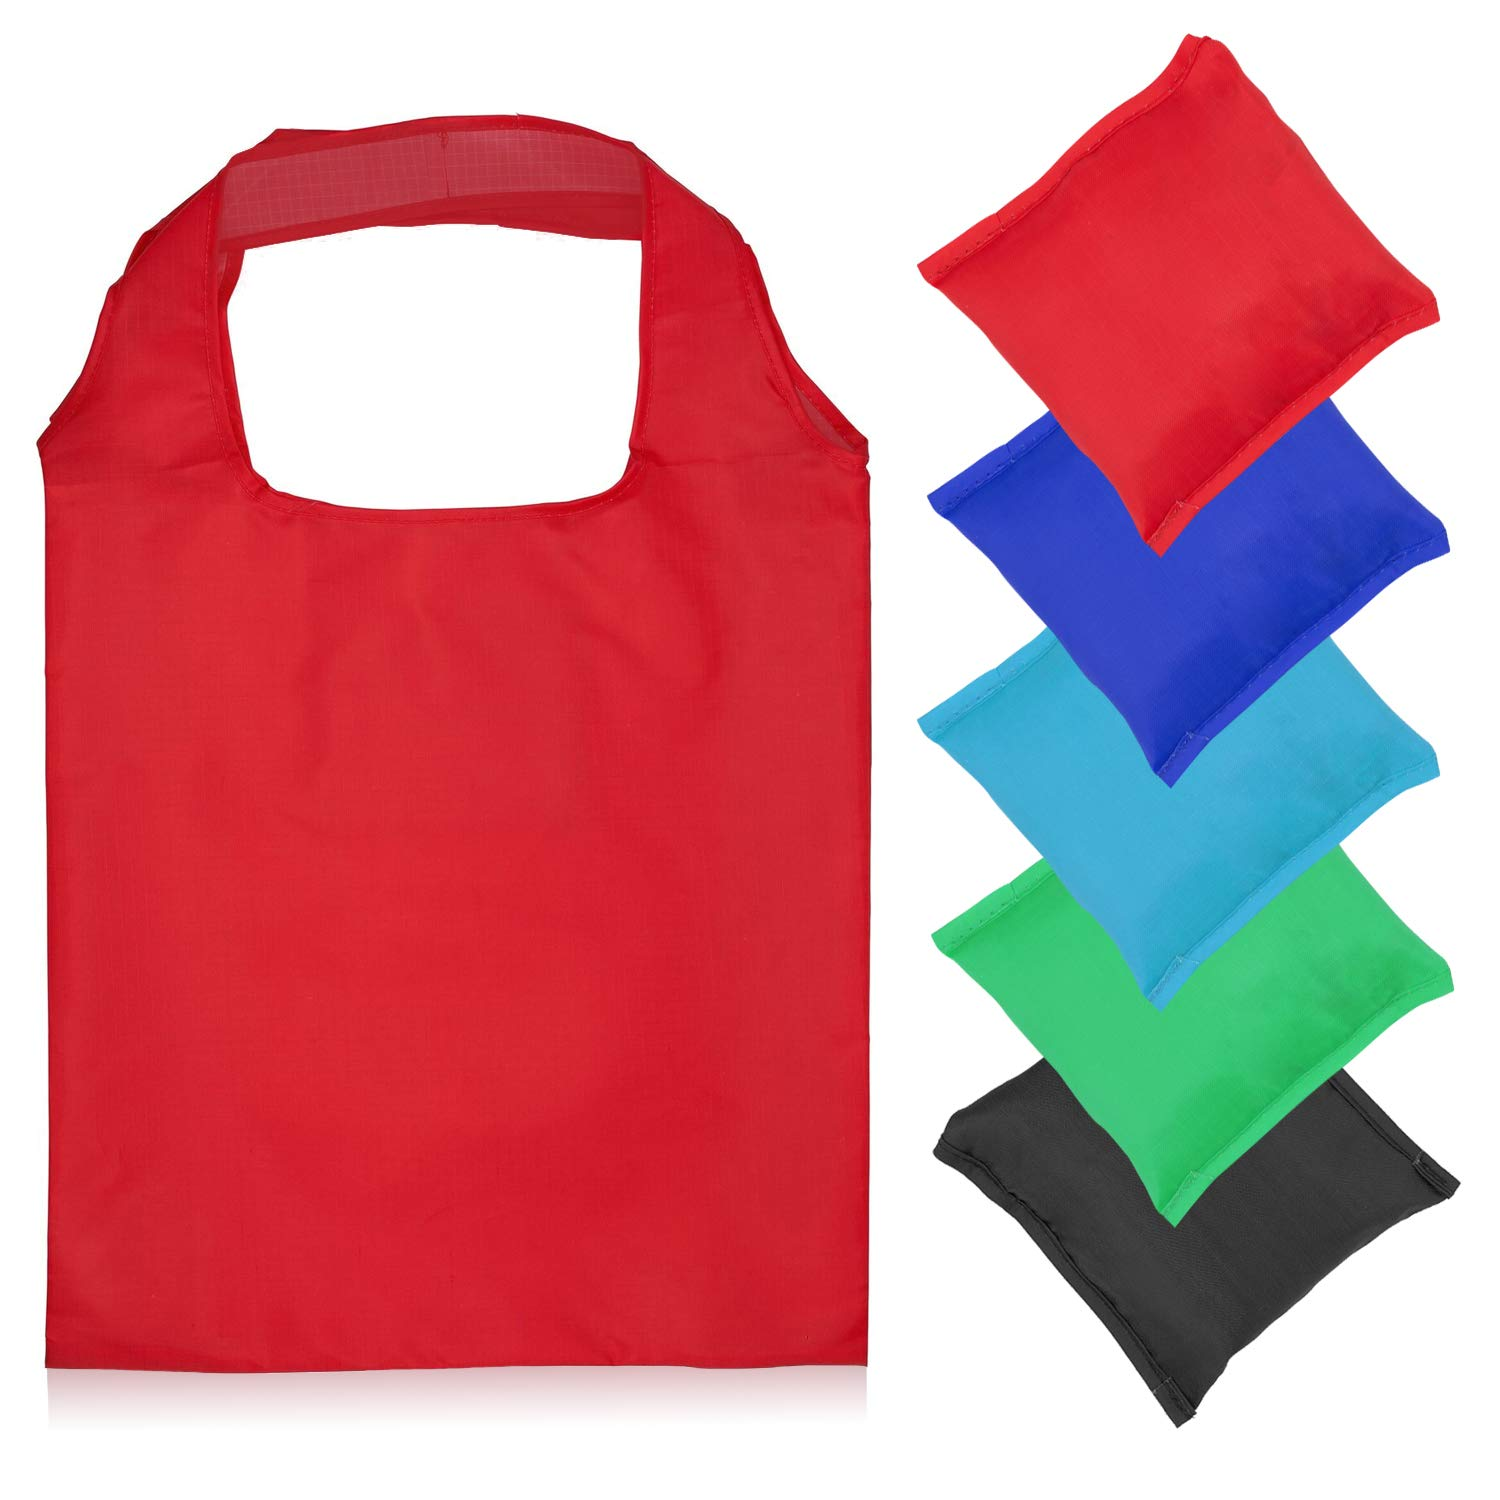 Reusable Grocery Bags – Set of 5 Washable, Foldable Shopping Bags with Attached Pouch – Nylon Cloth Groceries Totes, (Red, Green, Royal Blue, Aqua, Black)